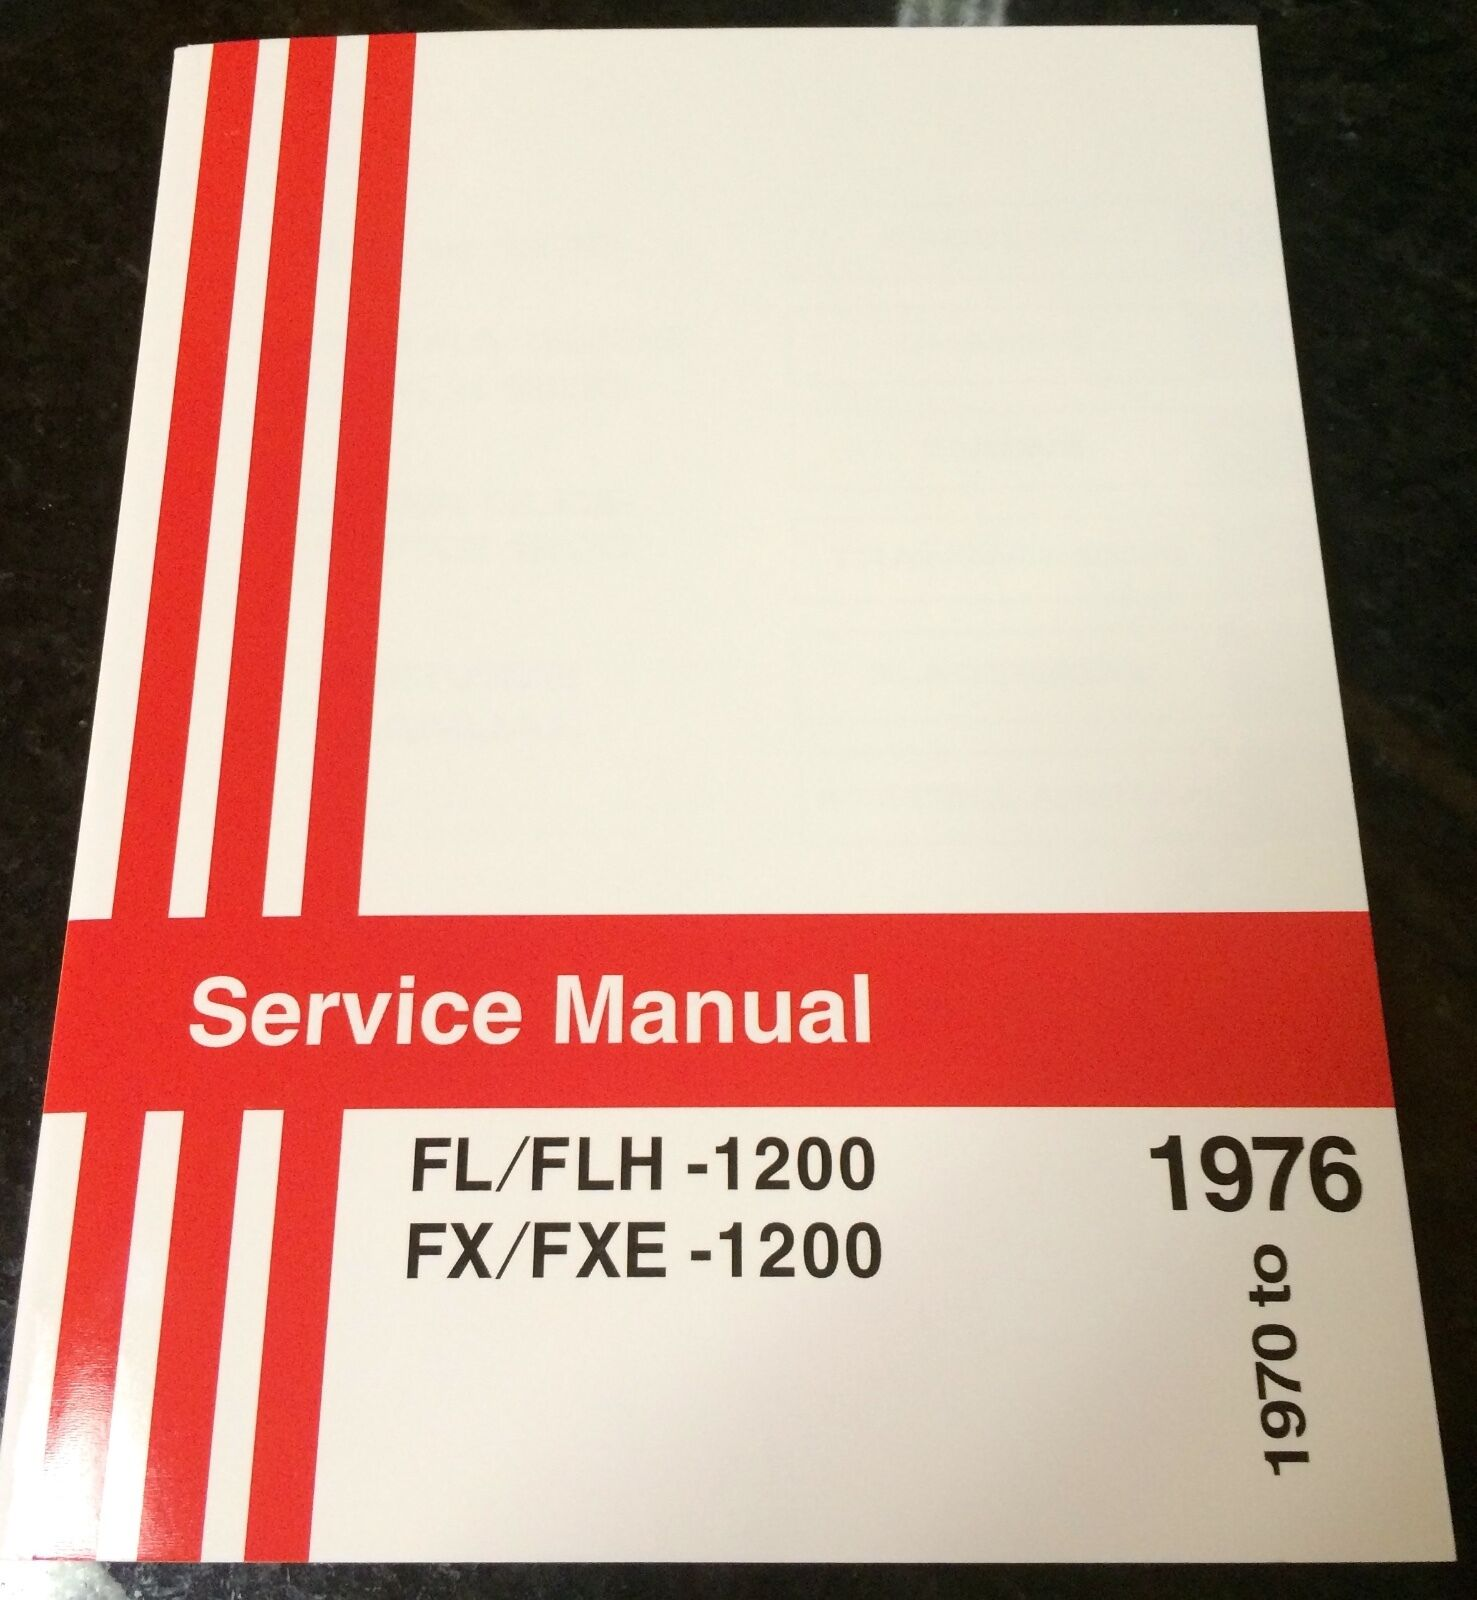 Harley Fl Fx Service Manual 1970 To 1976 Shovelhead Flh Fxe Wiring Diagram Diagrams 1 Of 4only 4 Available